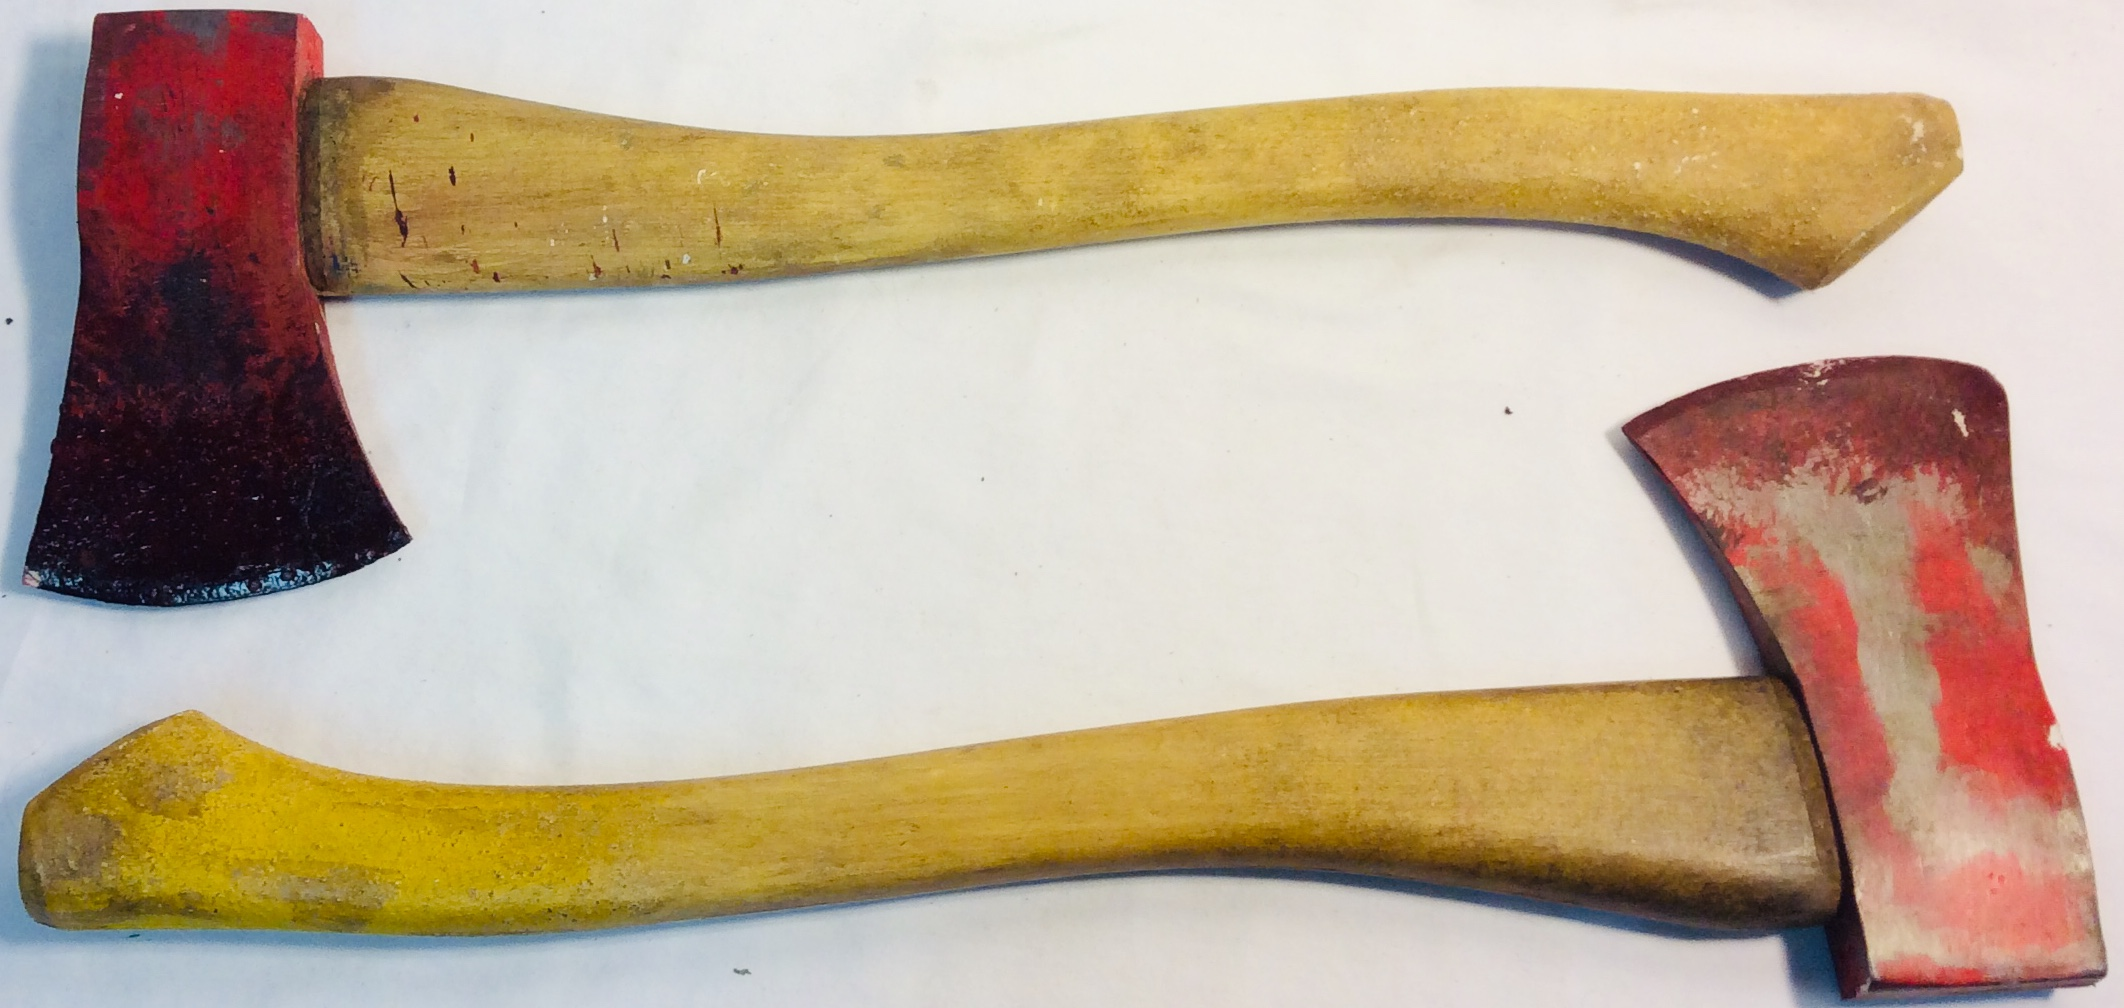 Firefighter style ax with rubber/wood aged blade. x4 wooden handle x4 rubber handle